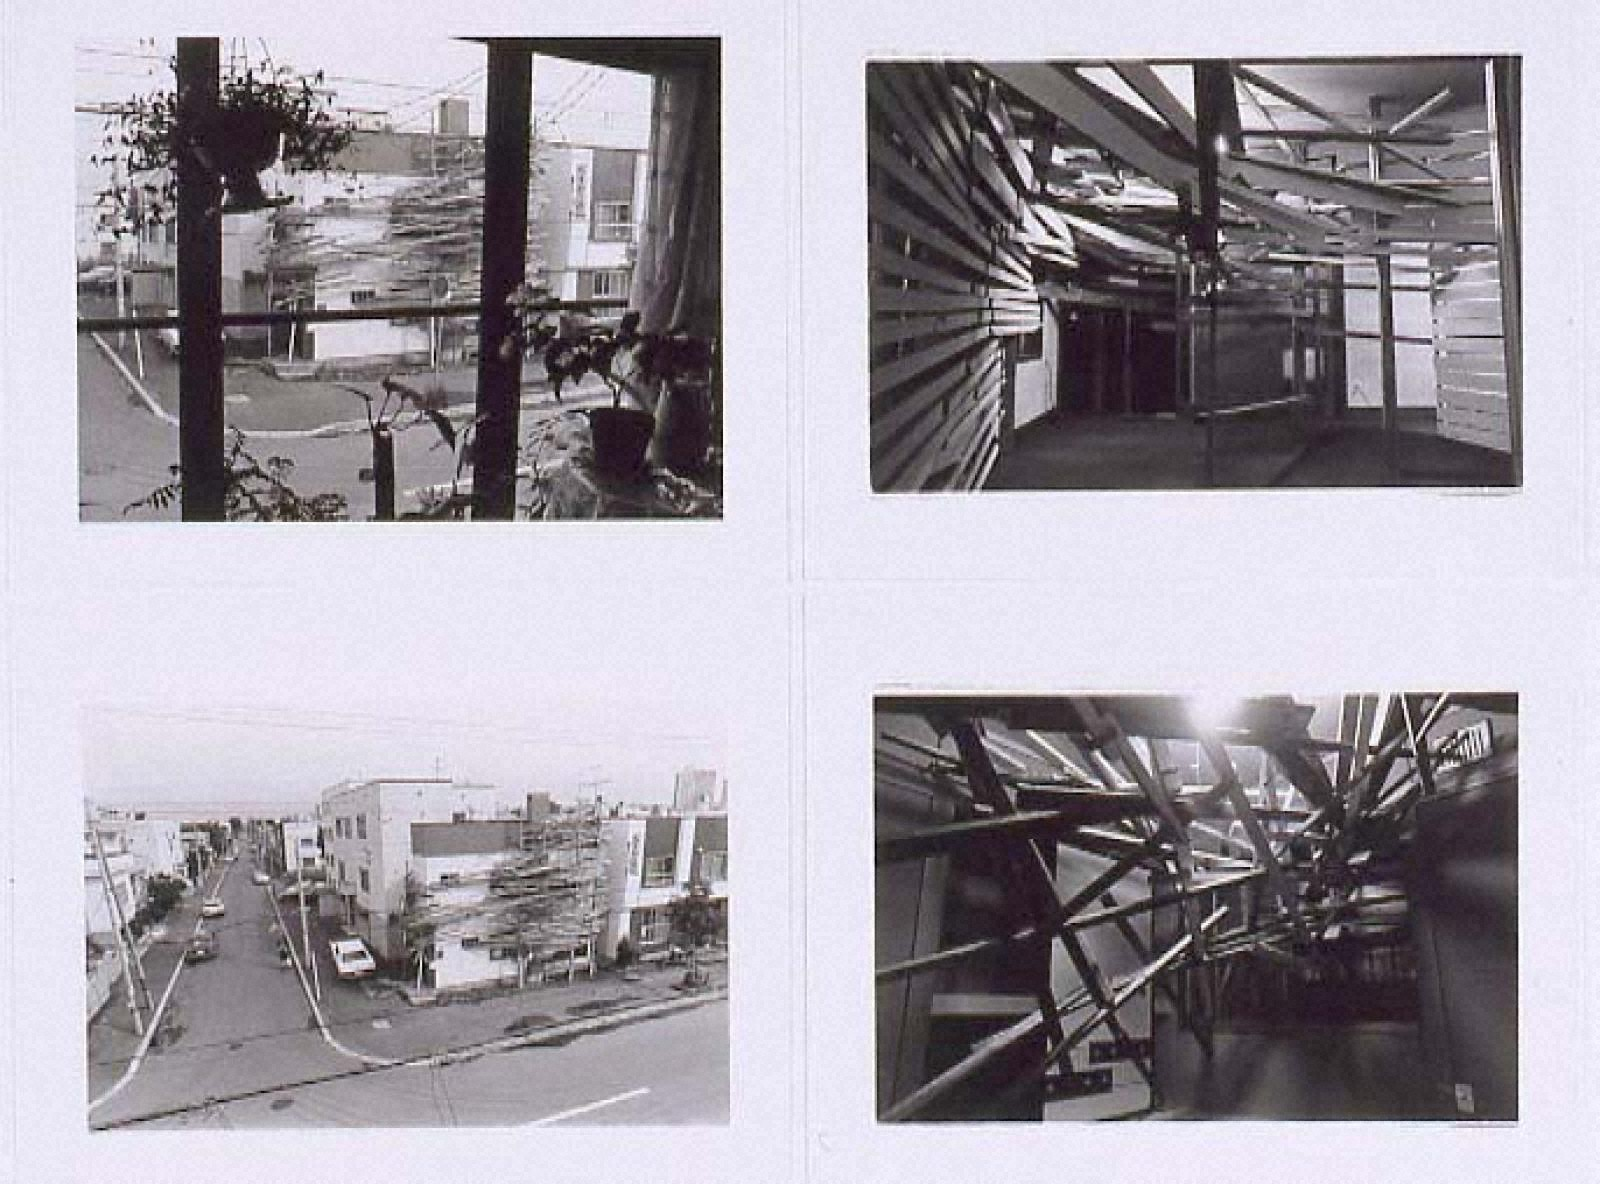 """PROJECT""""TETRA HOUSE N-3 W-26"""" SAPPORO 1983 「Photo Document 8」"""